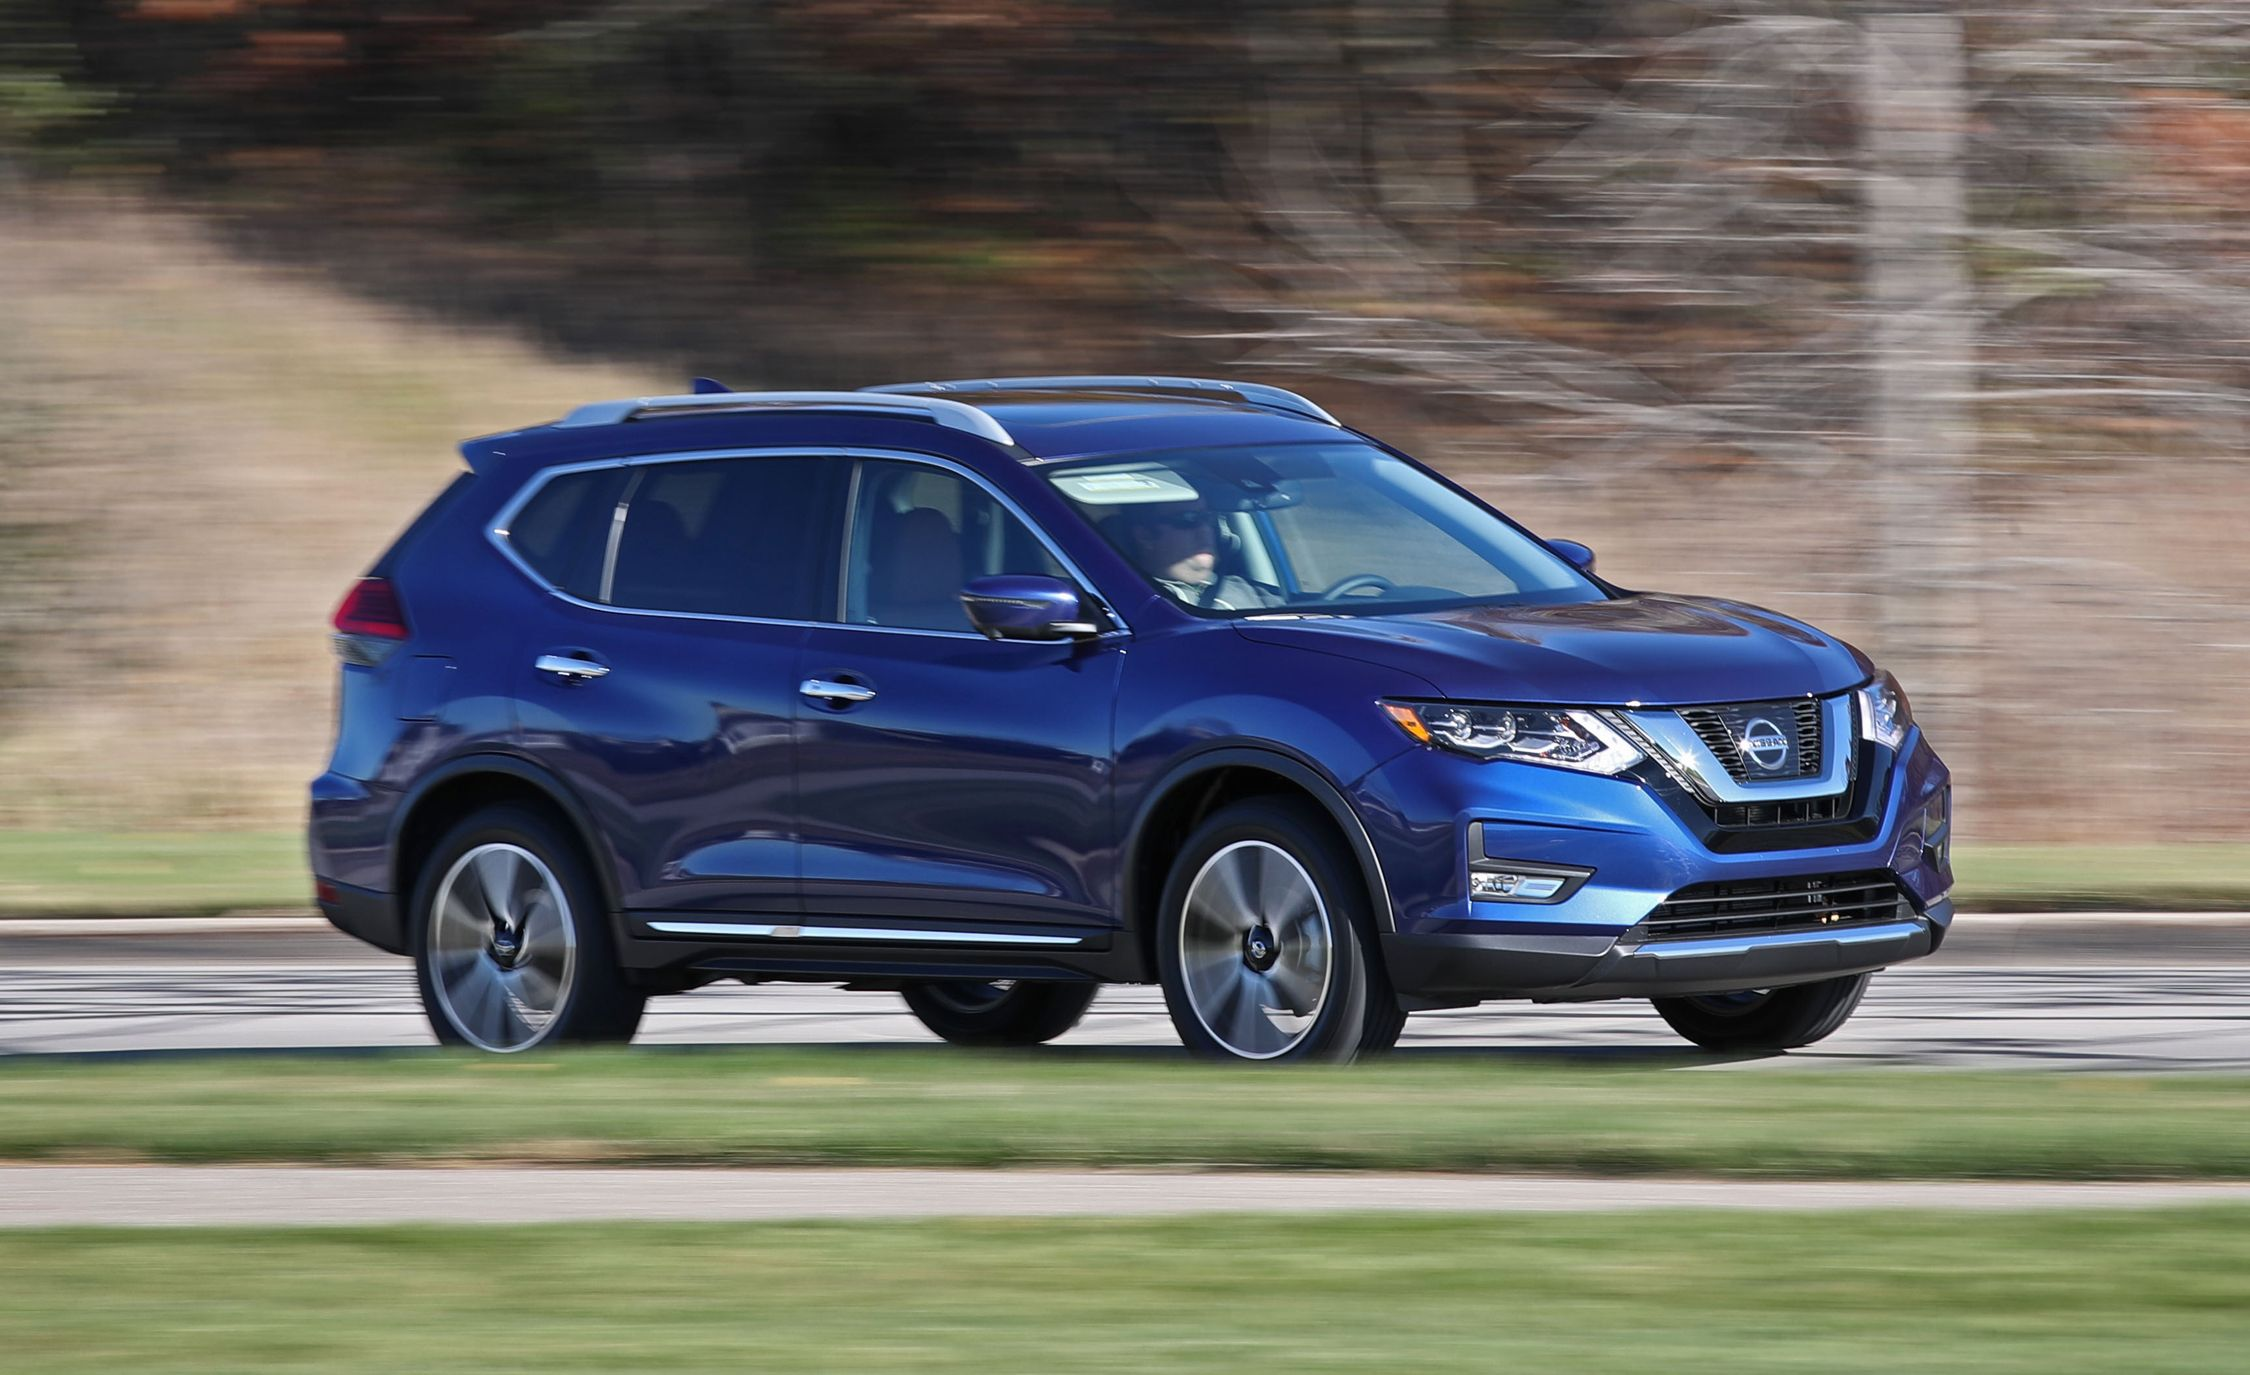 Nissan Rogue Owners Manual: NISSAN Jackknife key (if so equipped)